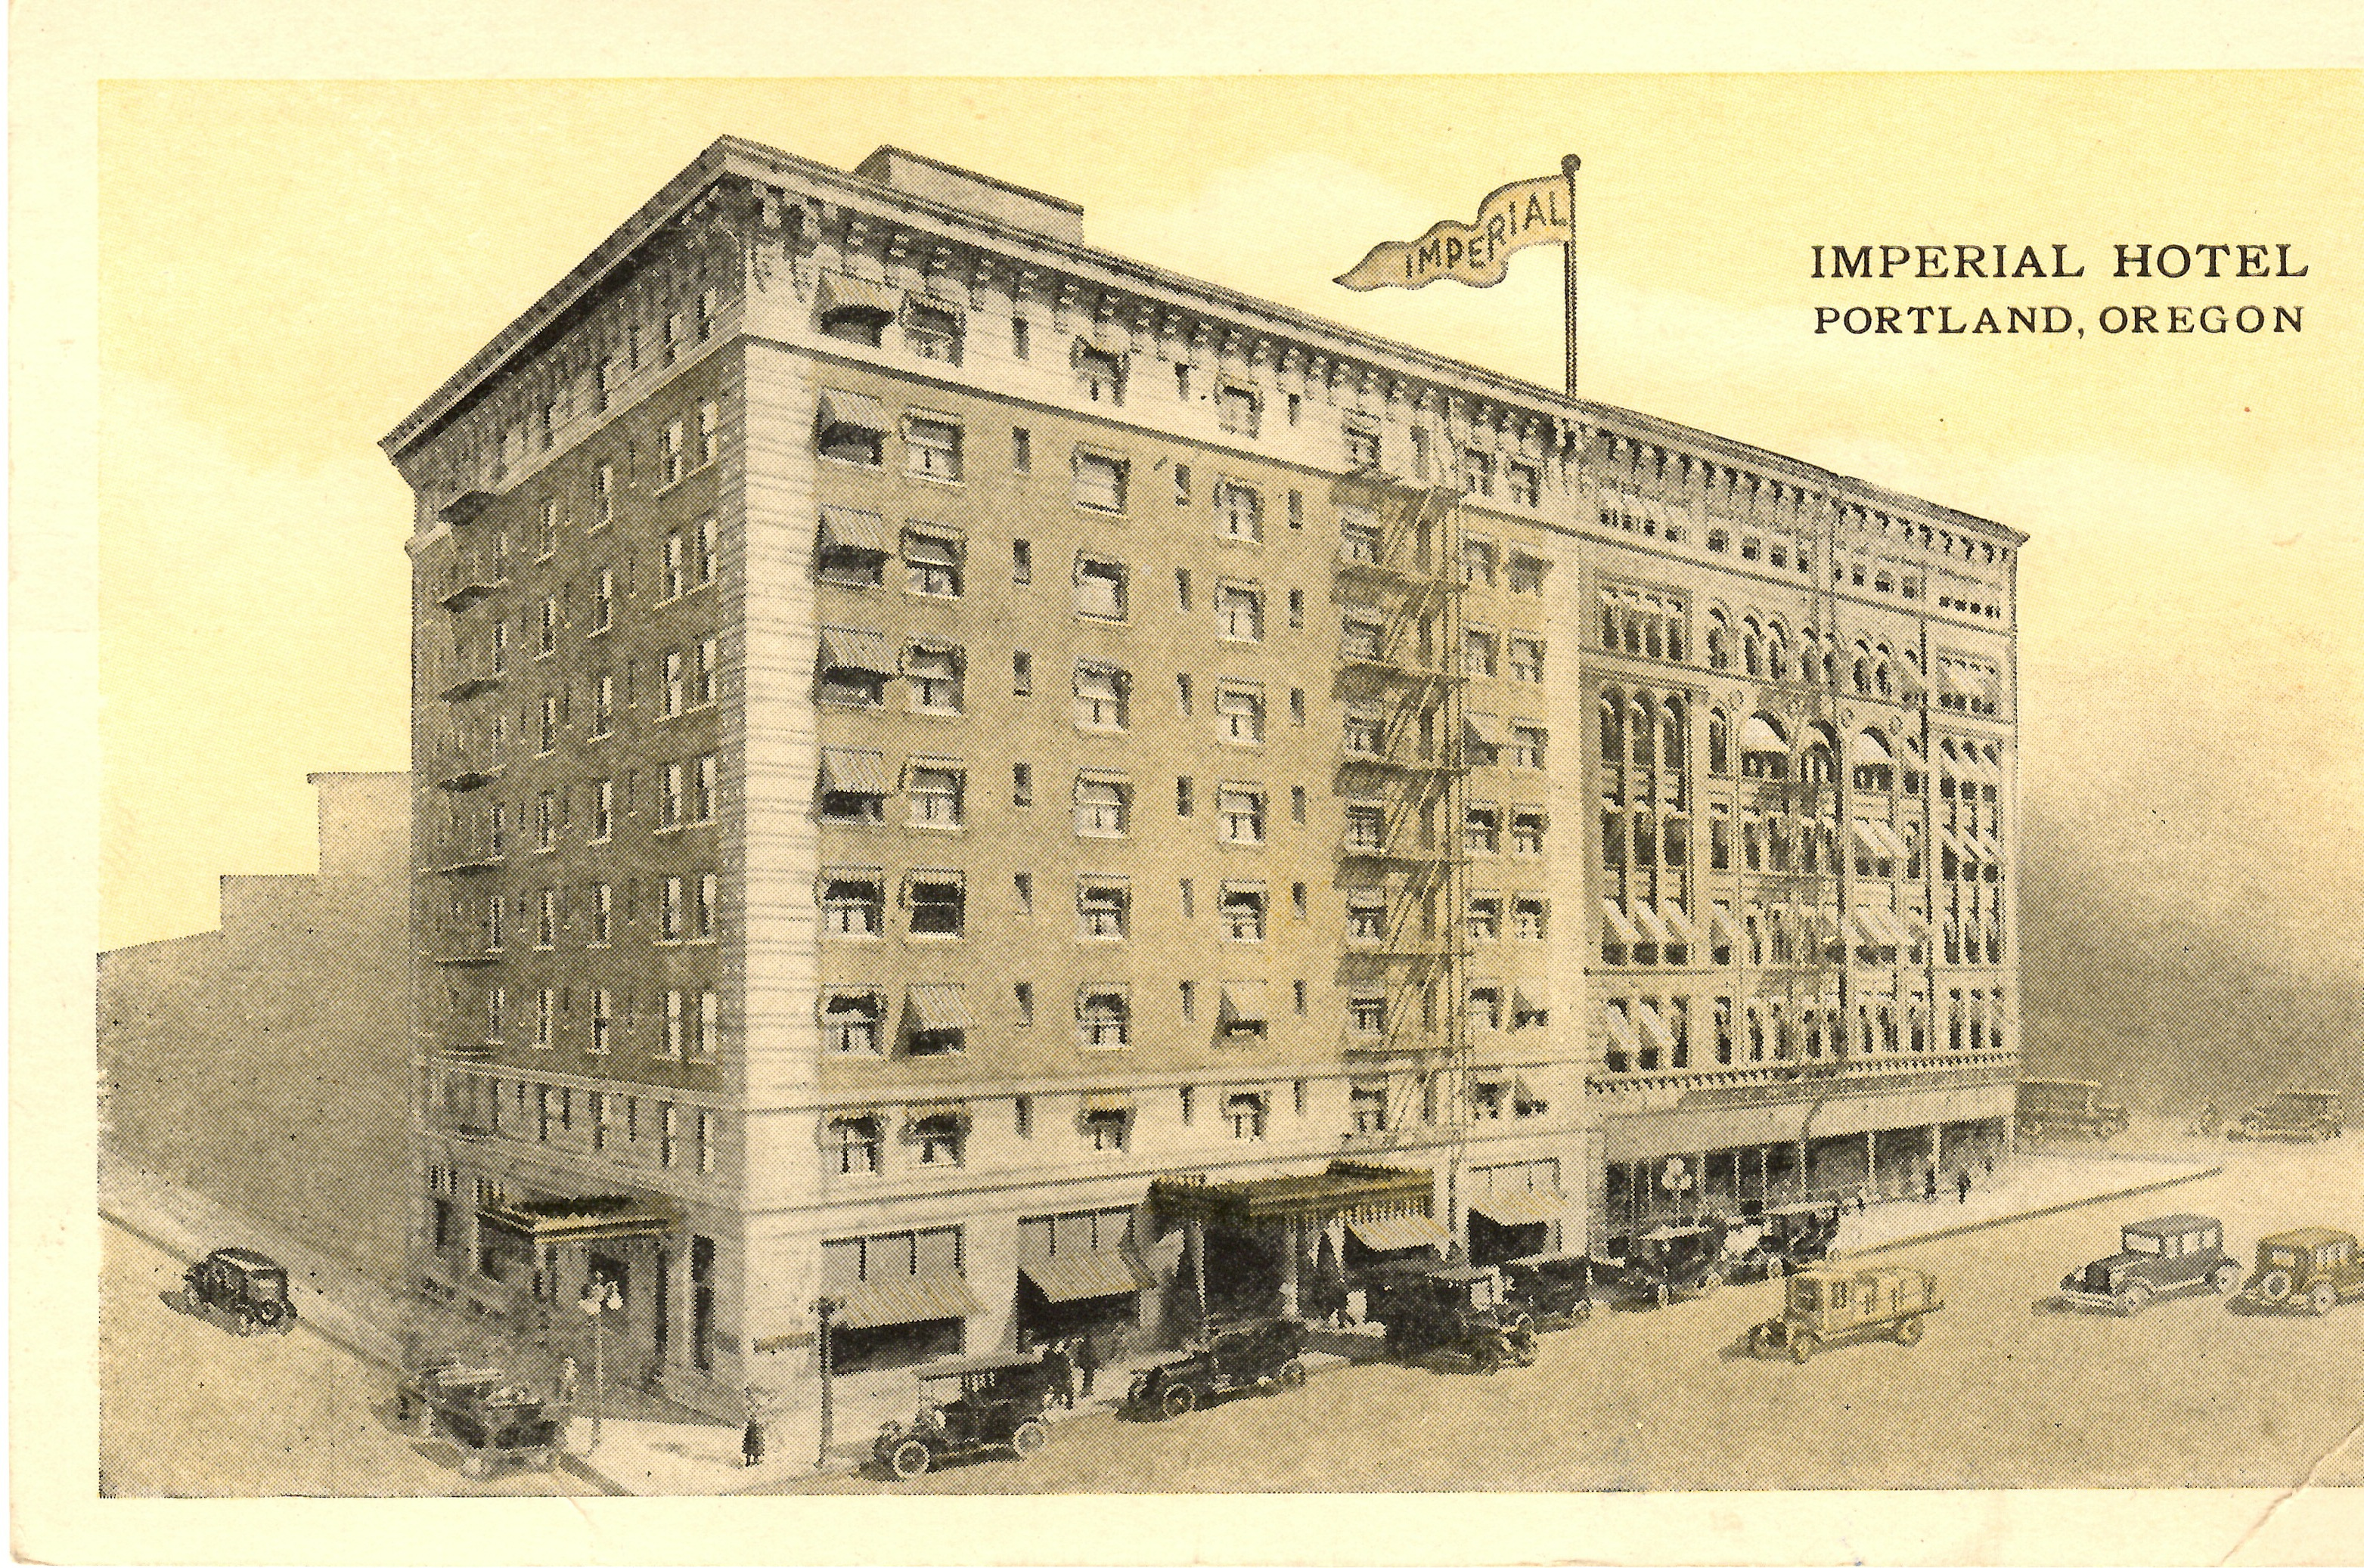 1910 postcard of the newly expanded hotel, with the new building on the left and the original building on the right.